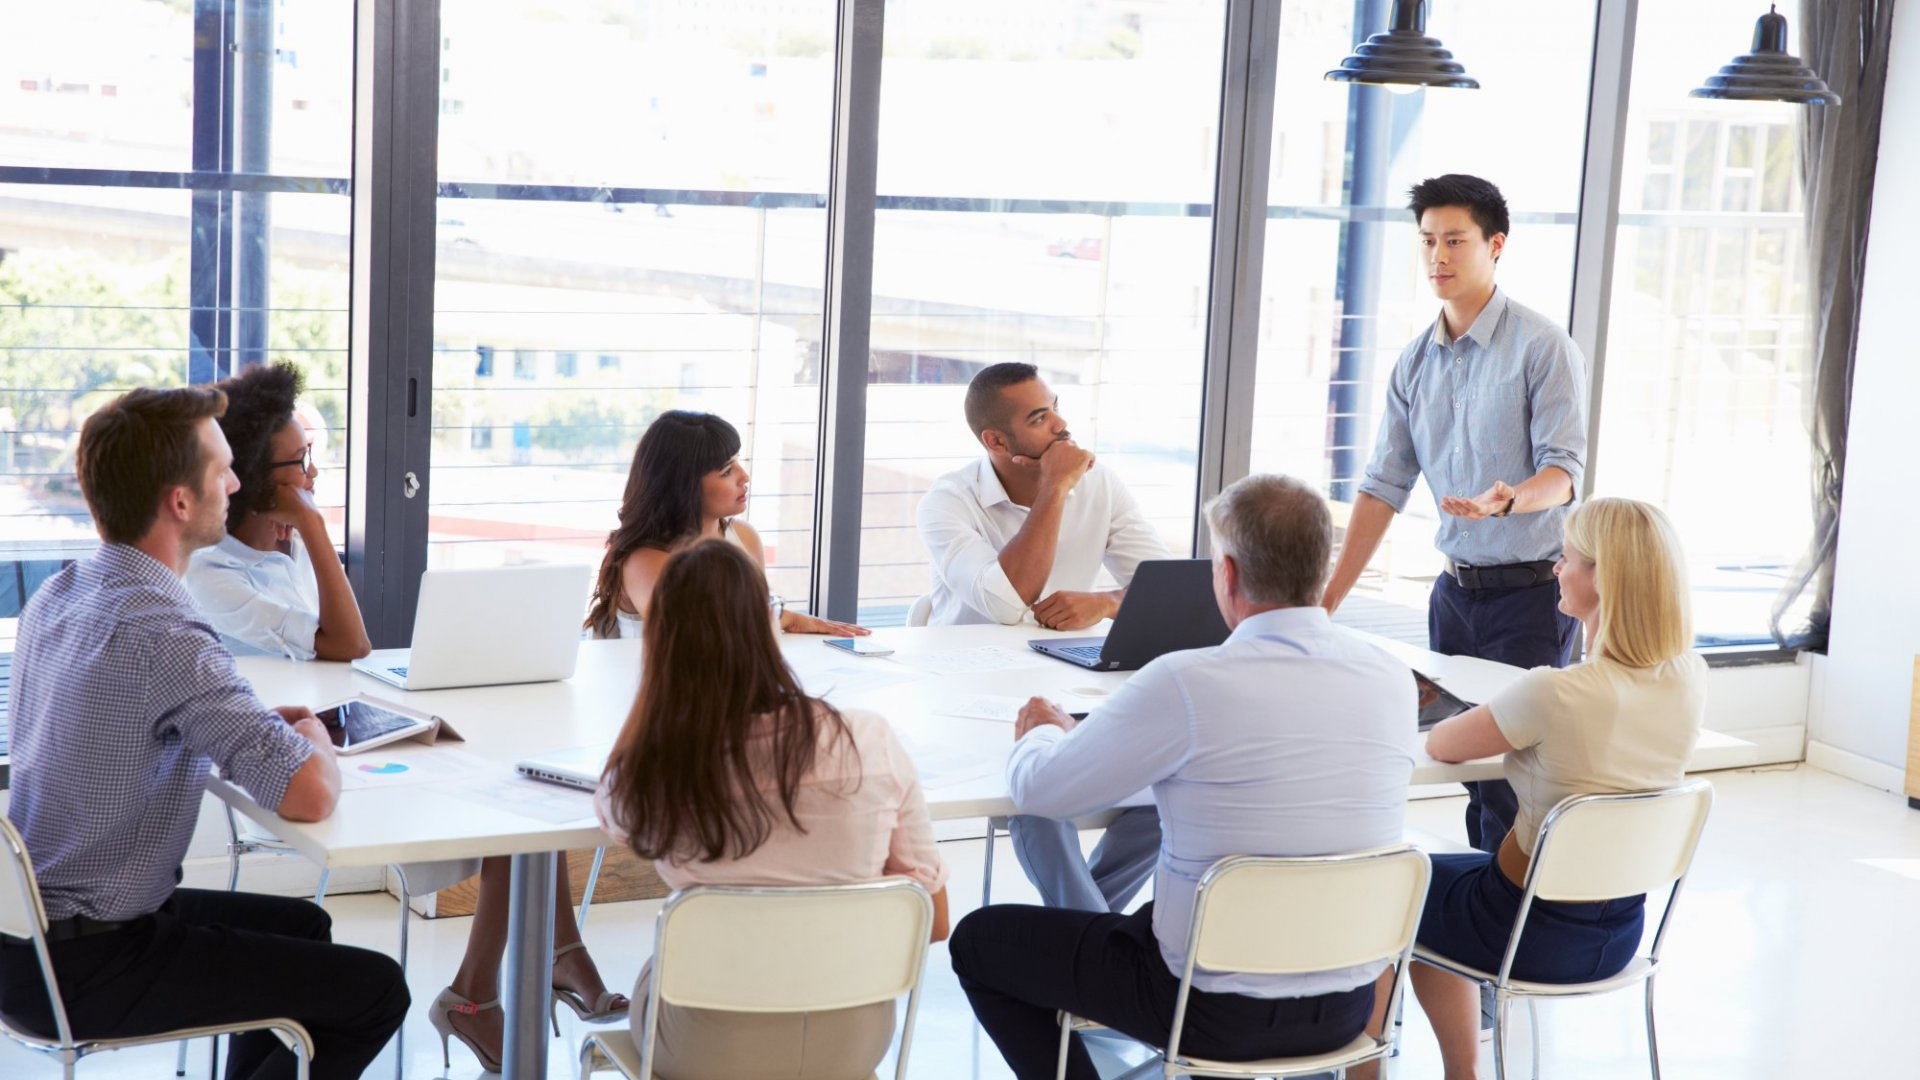 7 Things to Do Before a Business Meeting (and After You Leave)